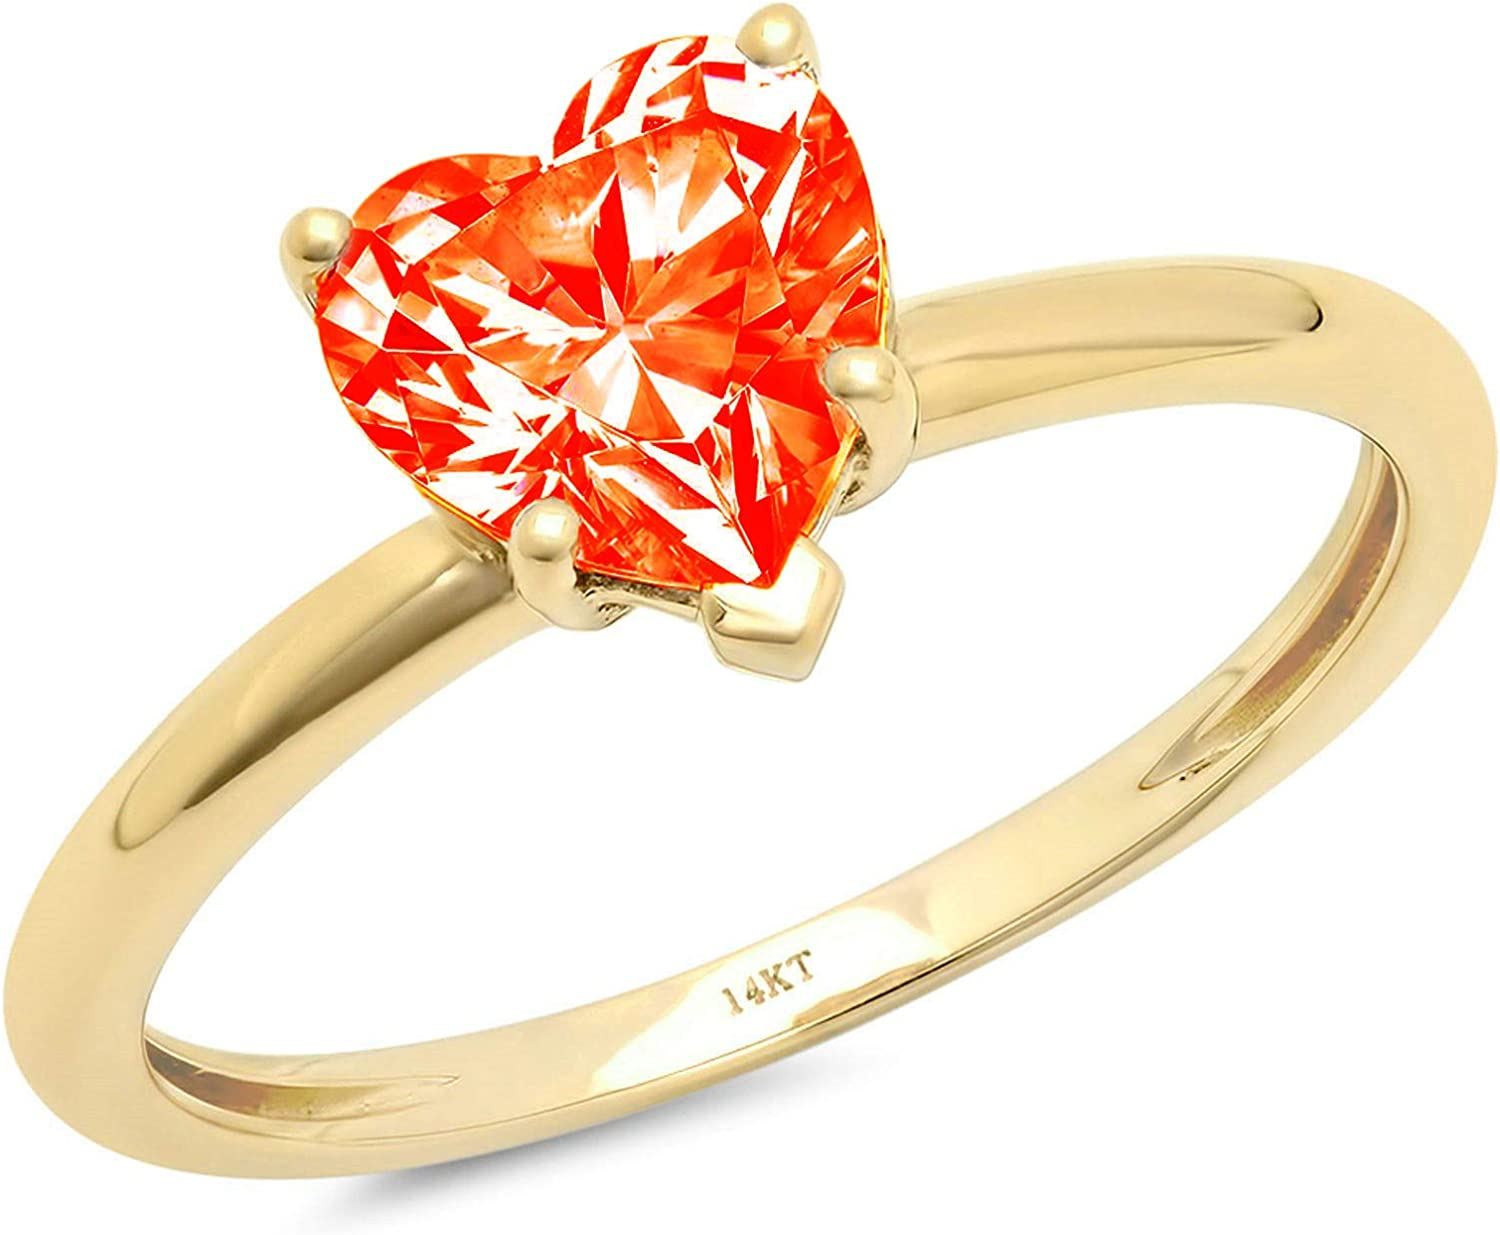 0.9ct Brilliant Heart Cut Solitaire Stunning Genuine Red Simulated Diamond Cubic Zirconia Ideal VVS1 D 5-Prong Engagement Wedding Bridal Promise Anniversary Ring Solid 14k Yellow Gold for Women